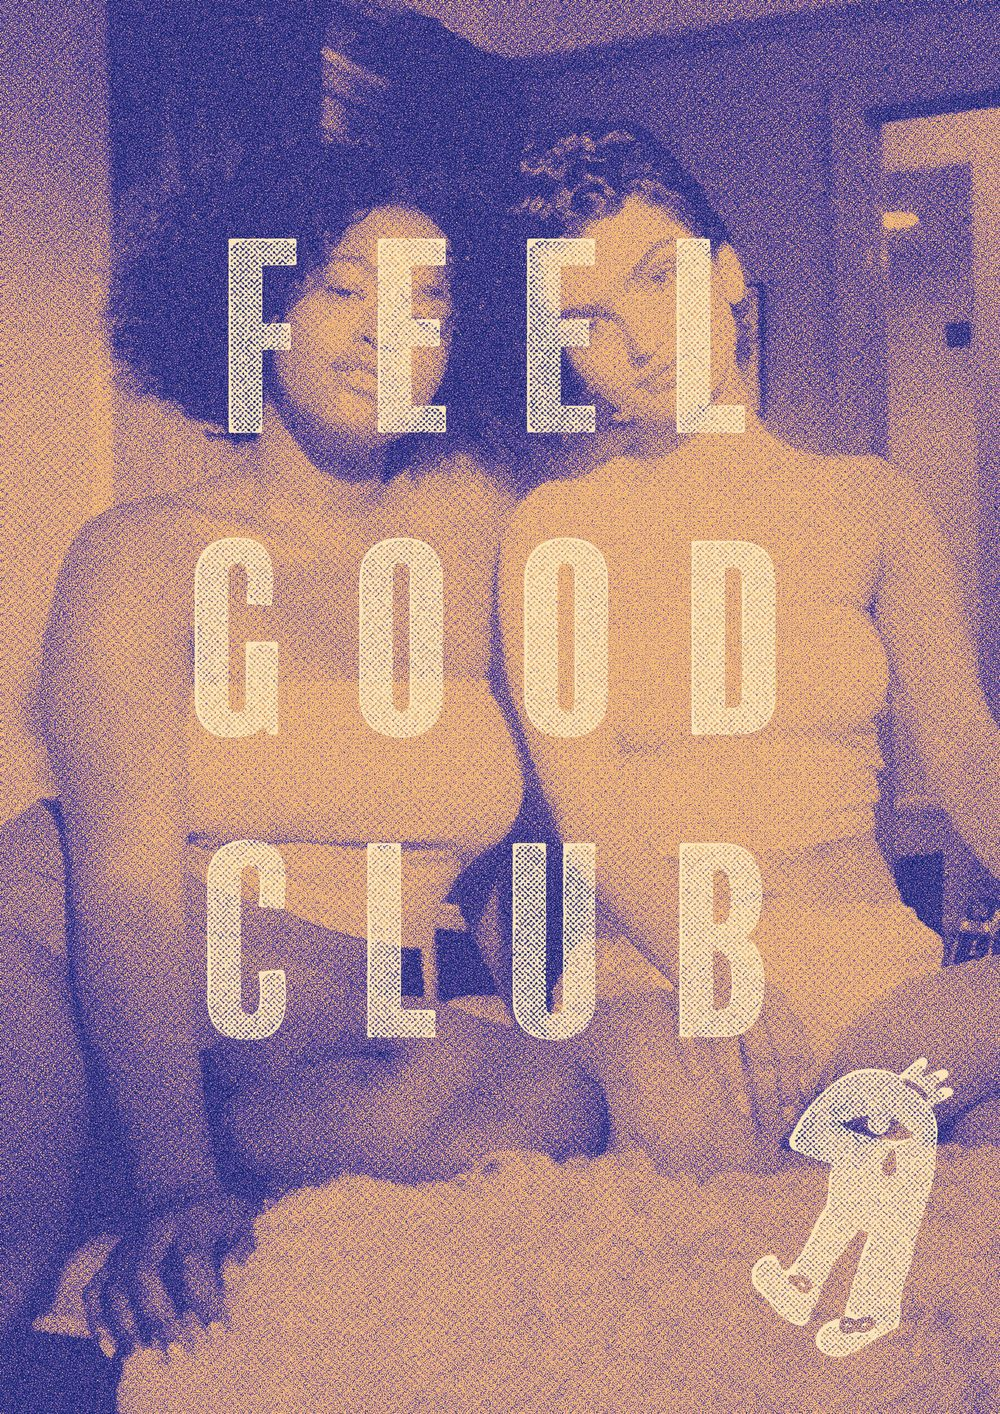 Feel Good Club - image 1 - student project